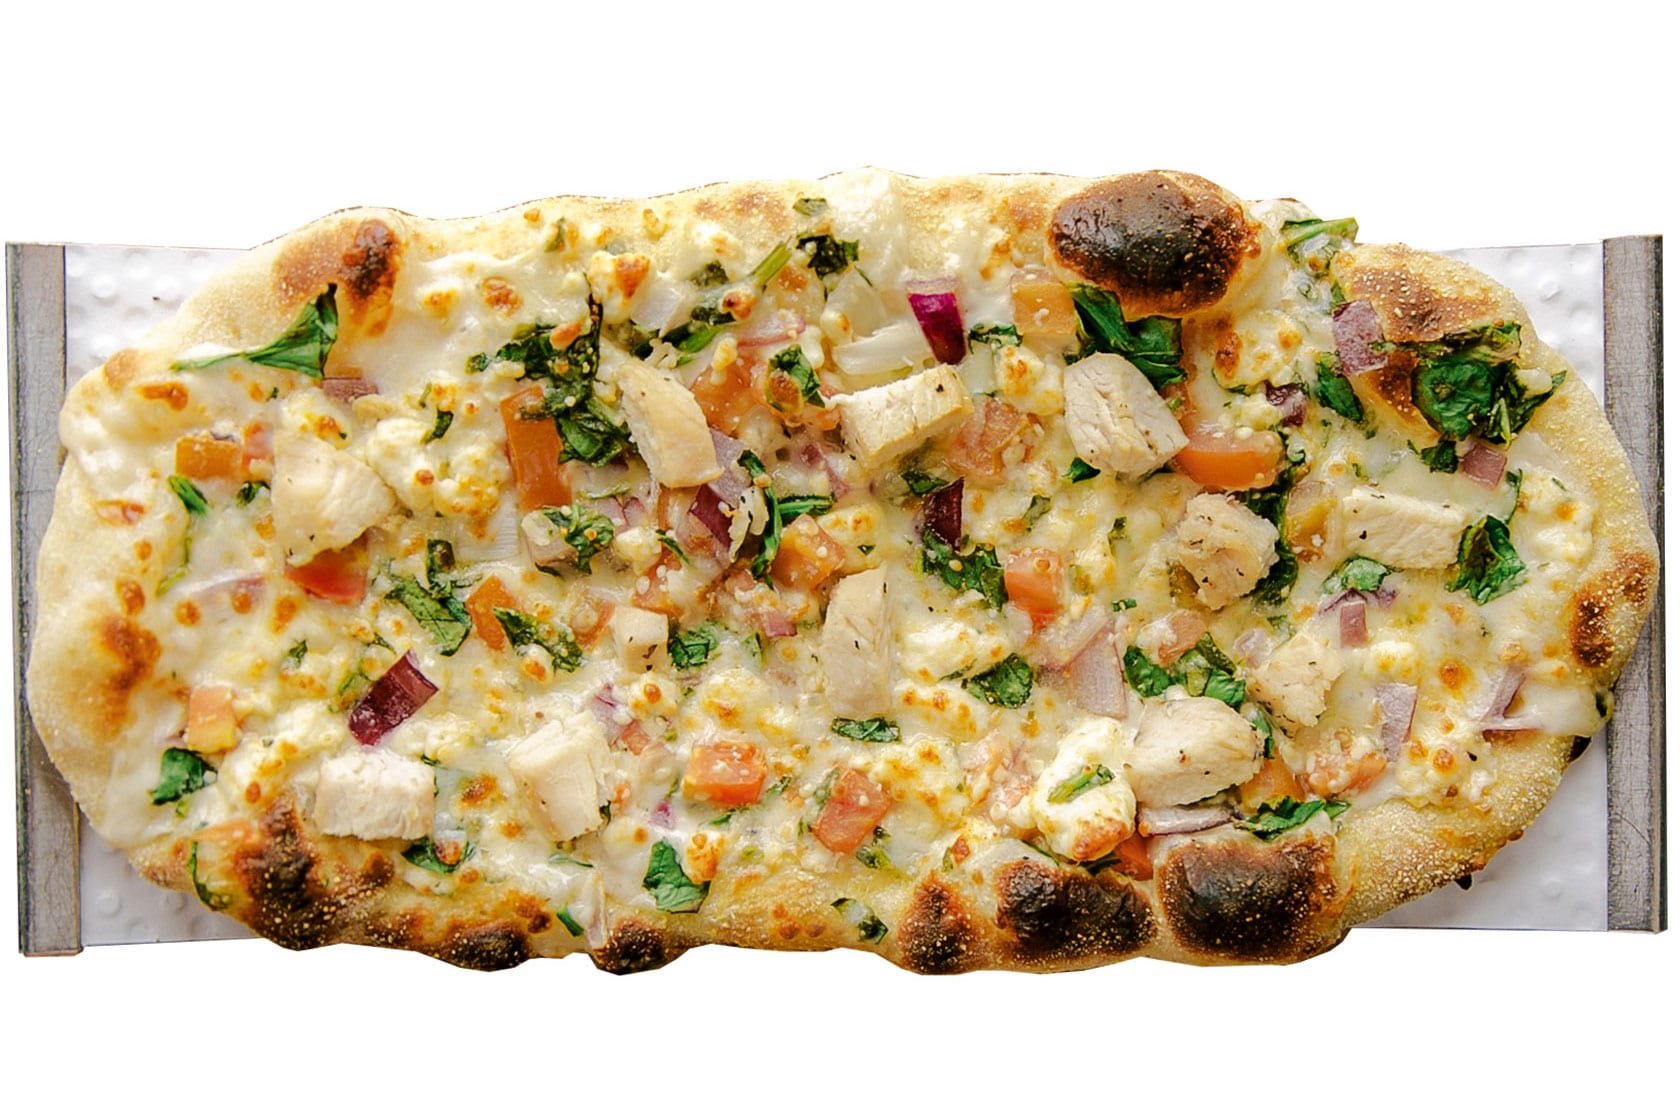 Crushed Red Roasted Chicken Gorgonzola Urban Crafted Pizza